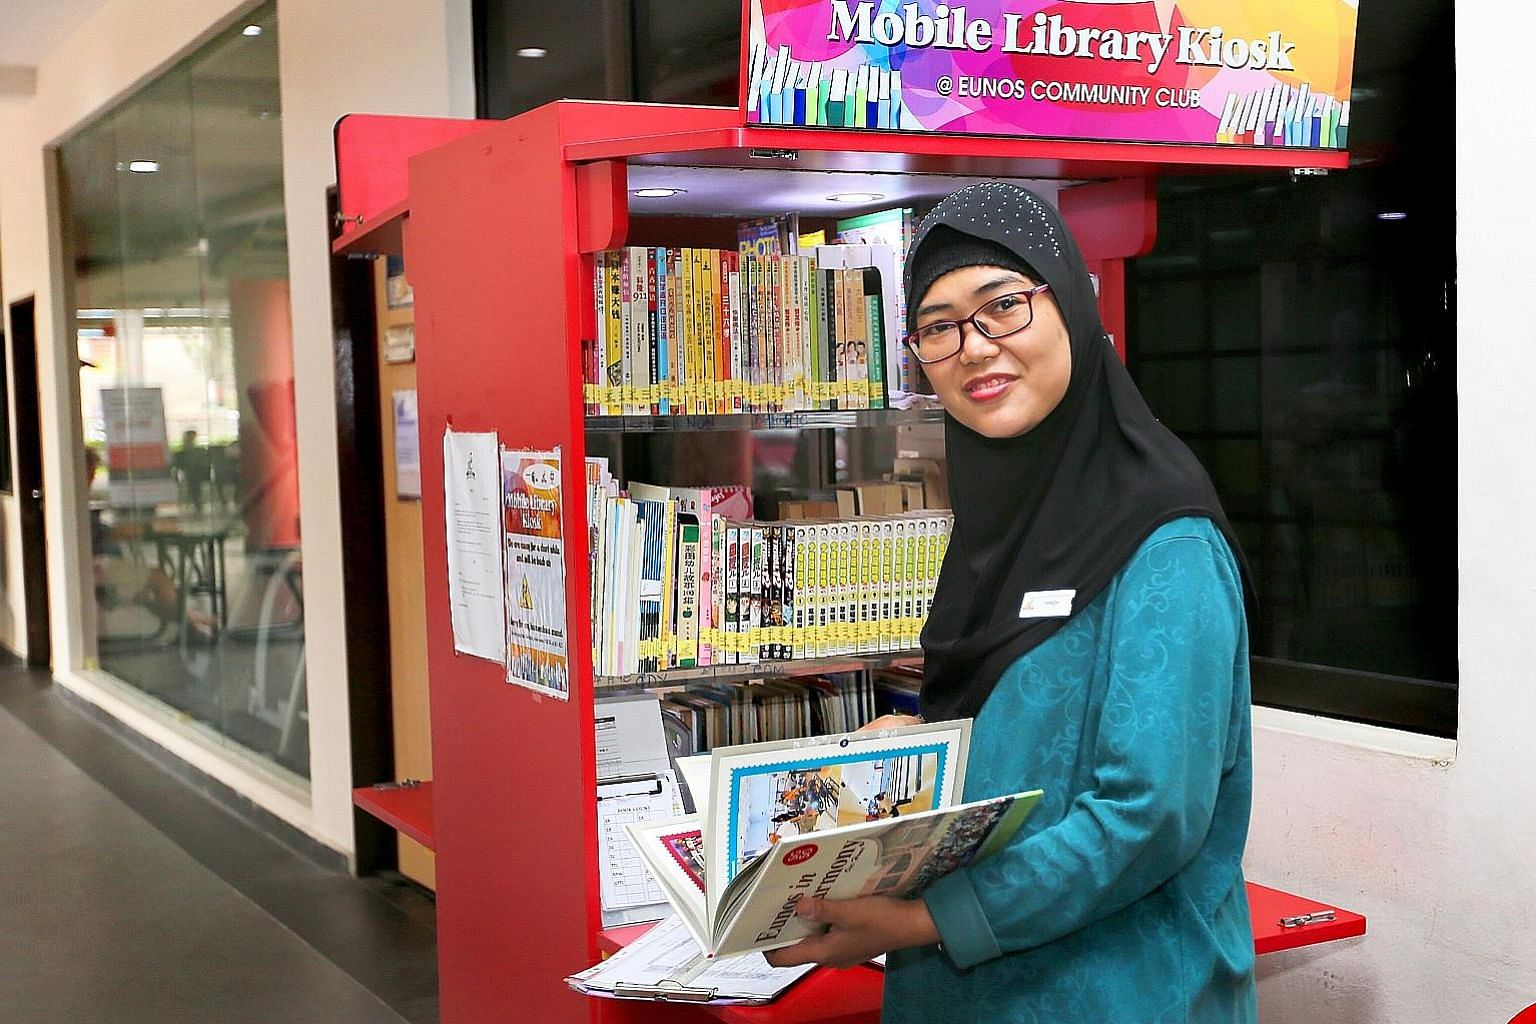 Ms Farnizah works at the mobile library kiosk of Eunos Community Club under the CDC Community Employment Programme.